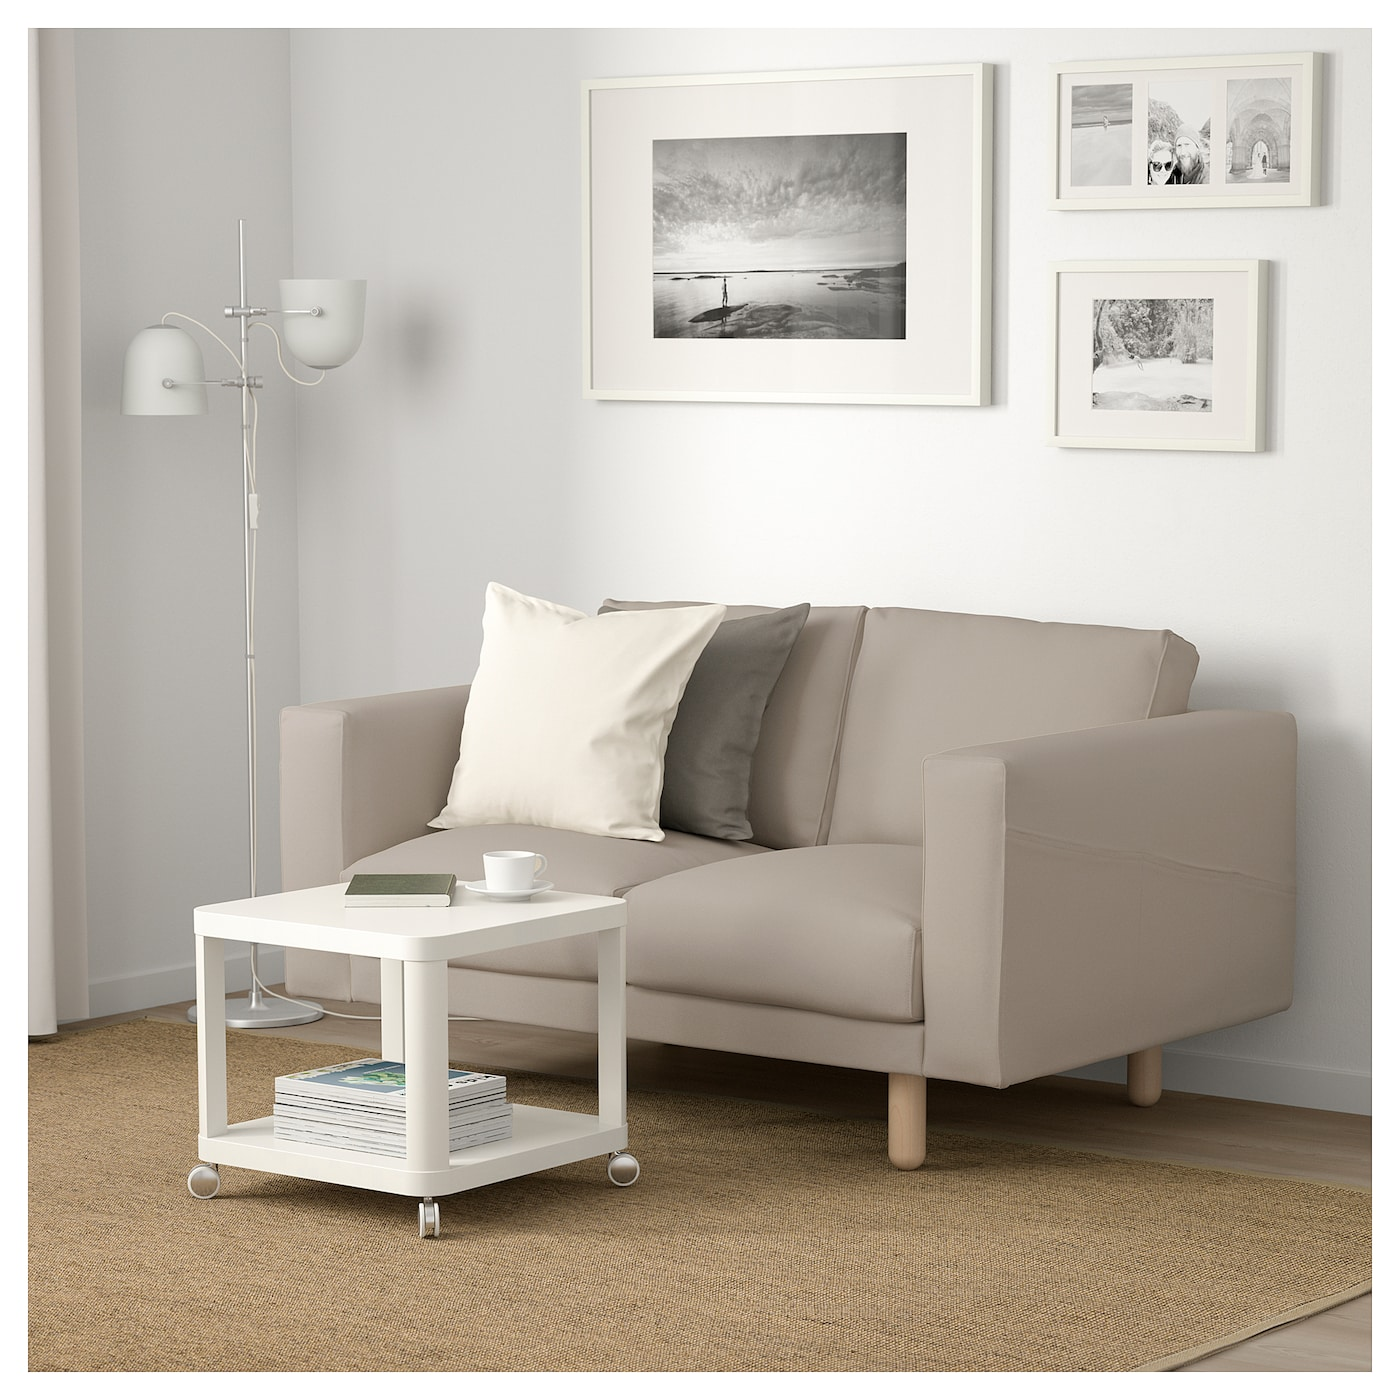 IKEA NORSBORG 2-seat sofa 10 year guarantee. Read about the terms in the guarantee brochure.